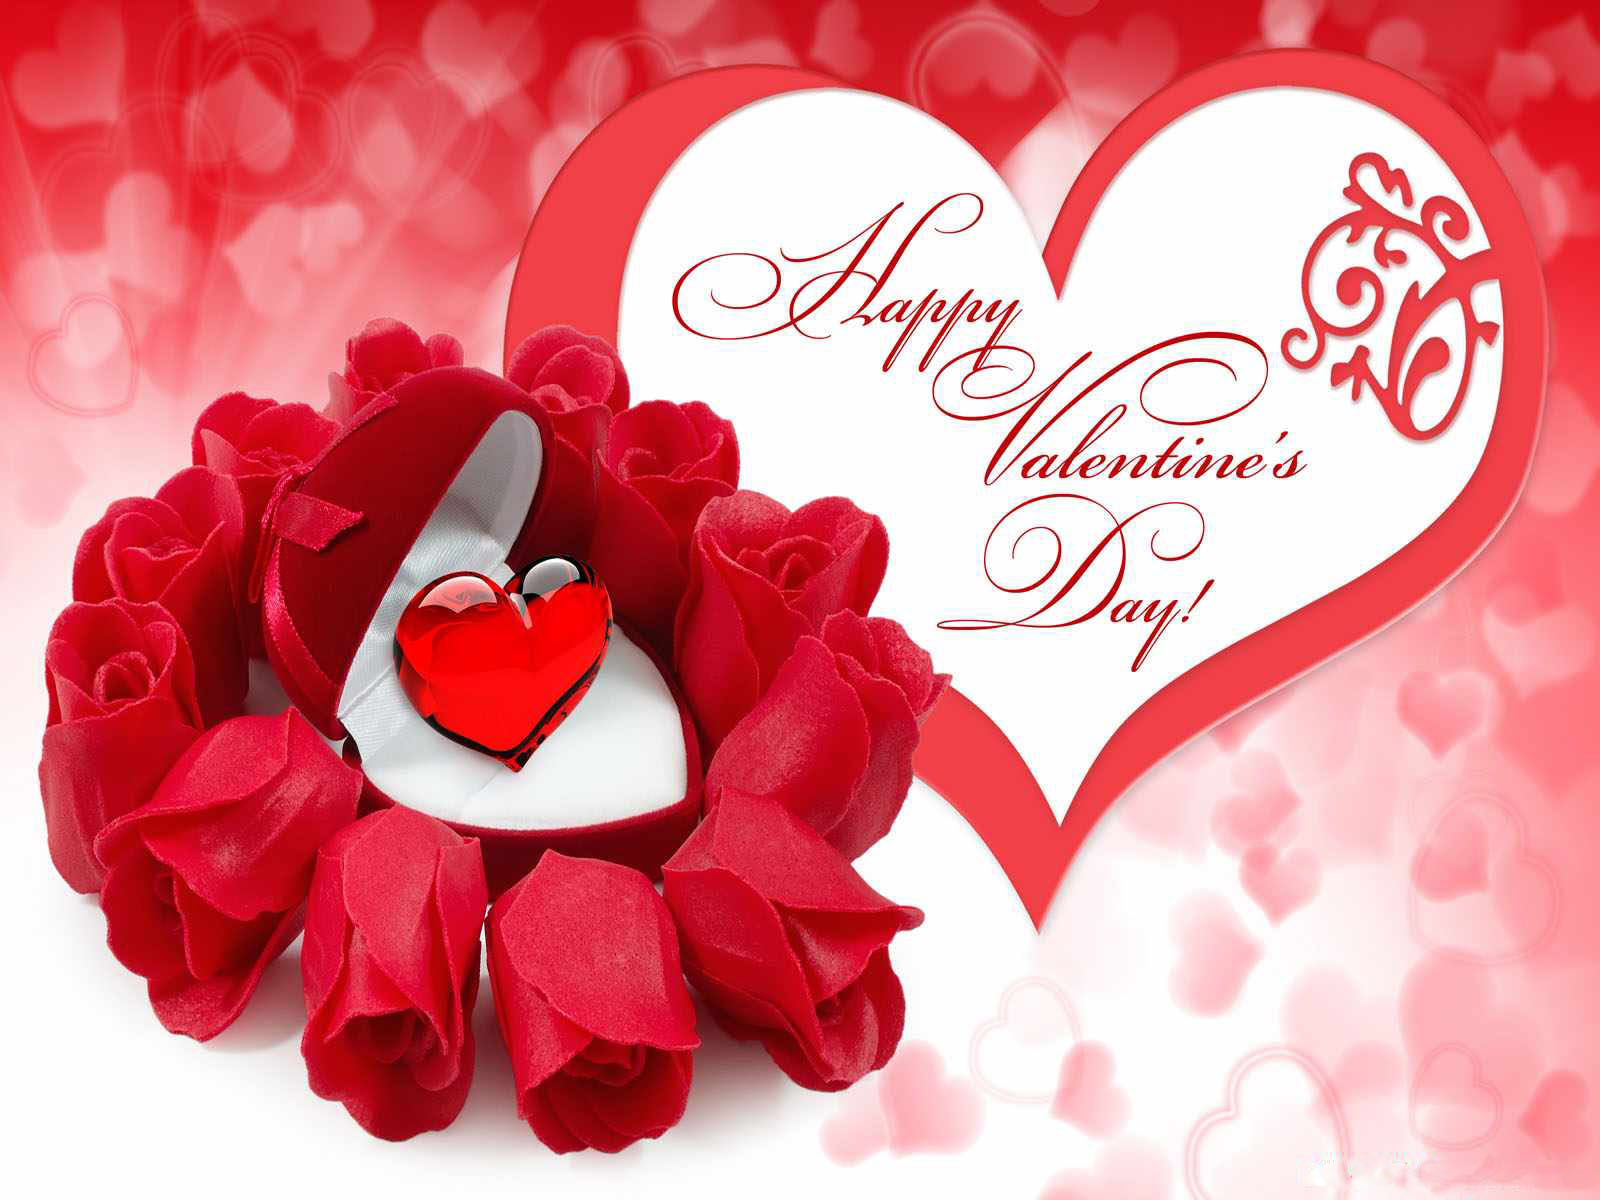 Great valentines day card messages valentines day info great valentines day card messages kristyandbryce Gallery